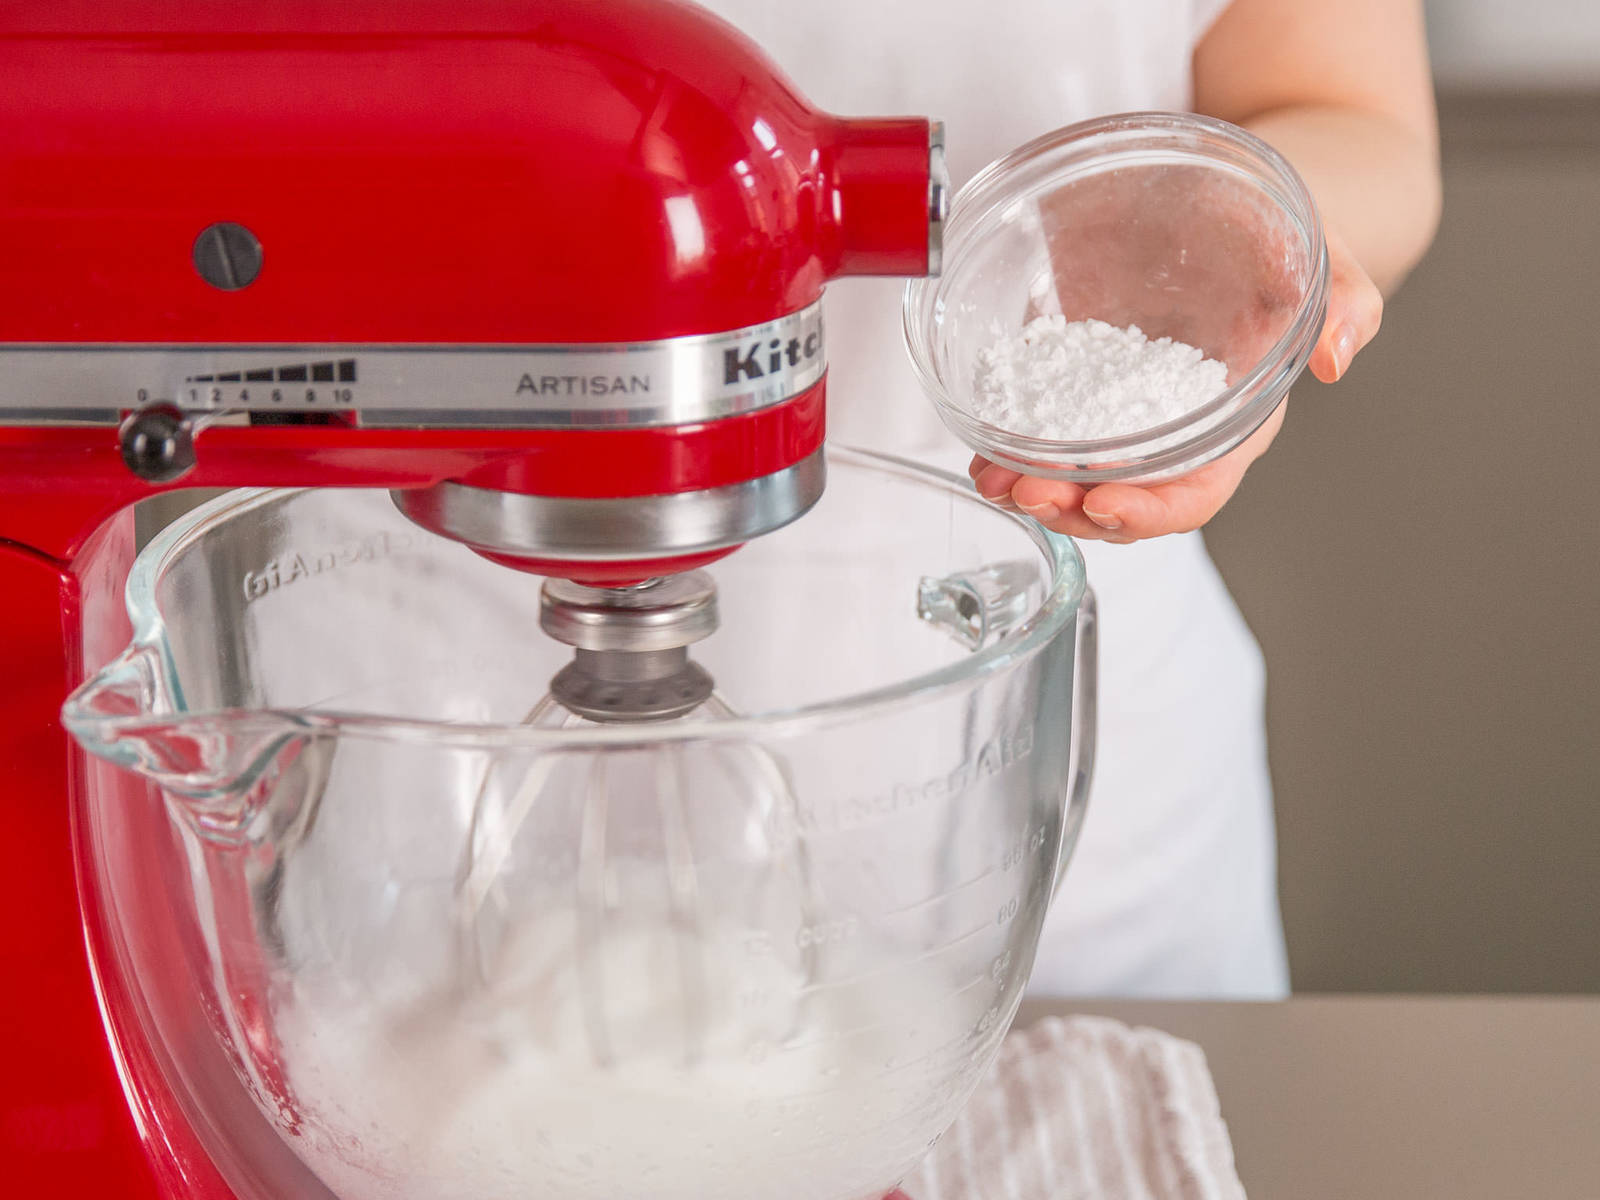 Beat egg whites with a pinch of salt until stiff peaks form. Slowly whisk in the remaining confectioner's sugar.